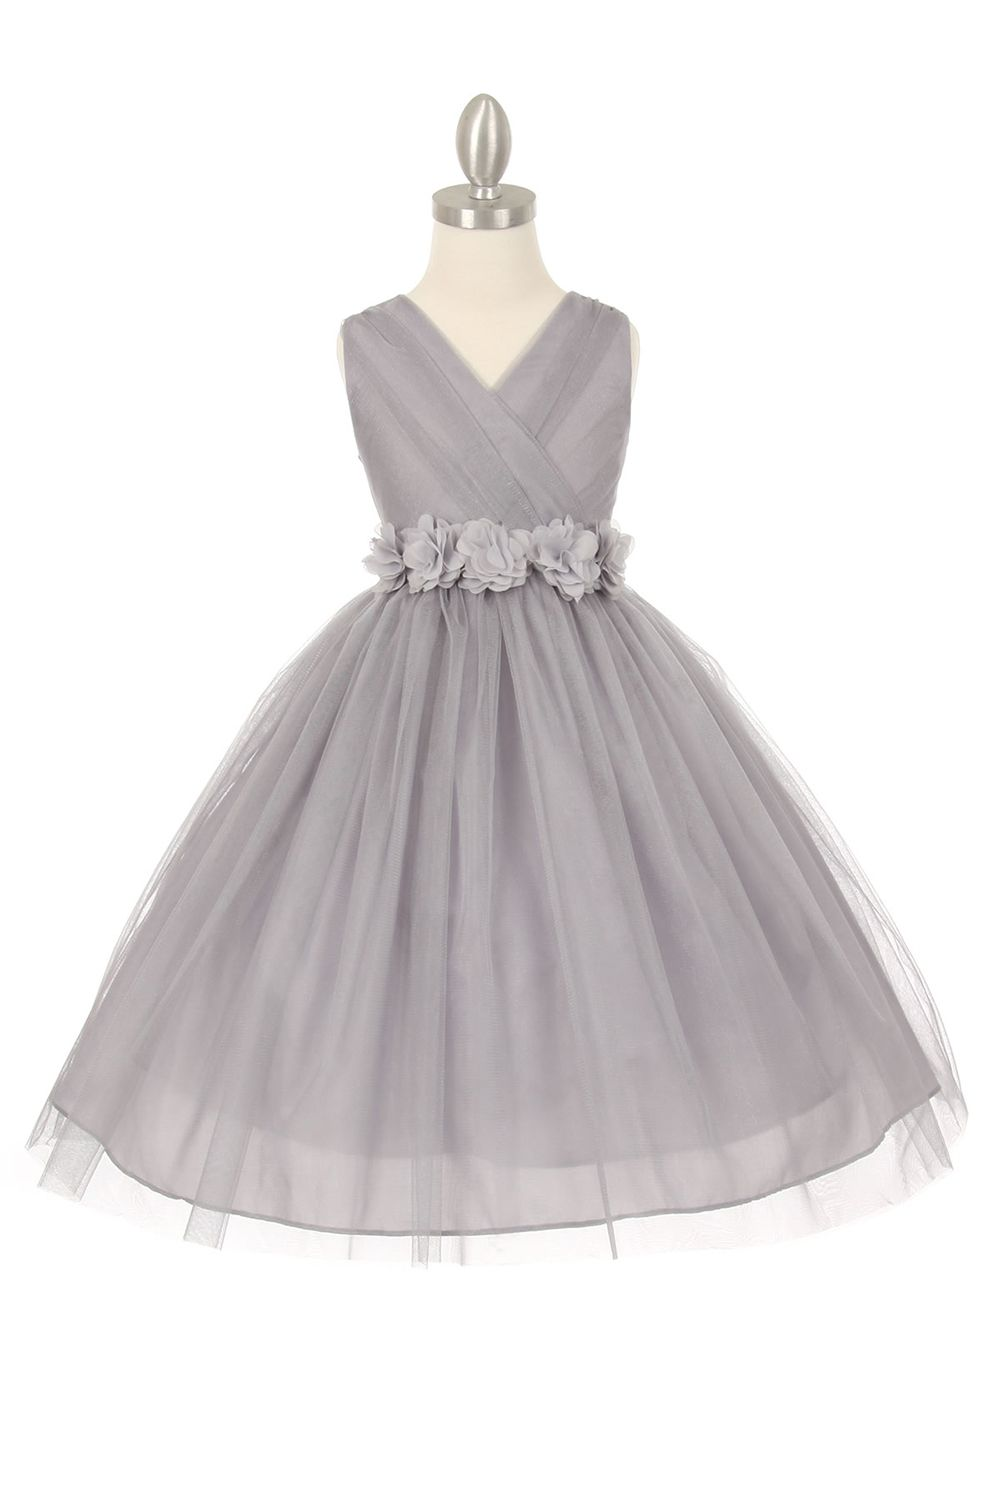 Silverwhite tulle v neck with removable floral sash flower girl silverwhite tulle v neck with removable floral sash flower girl dress mightylinksfo